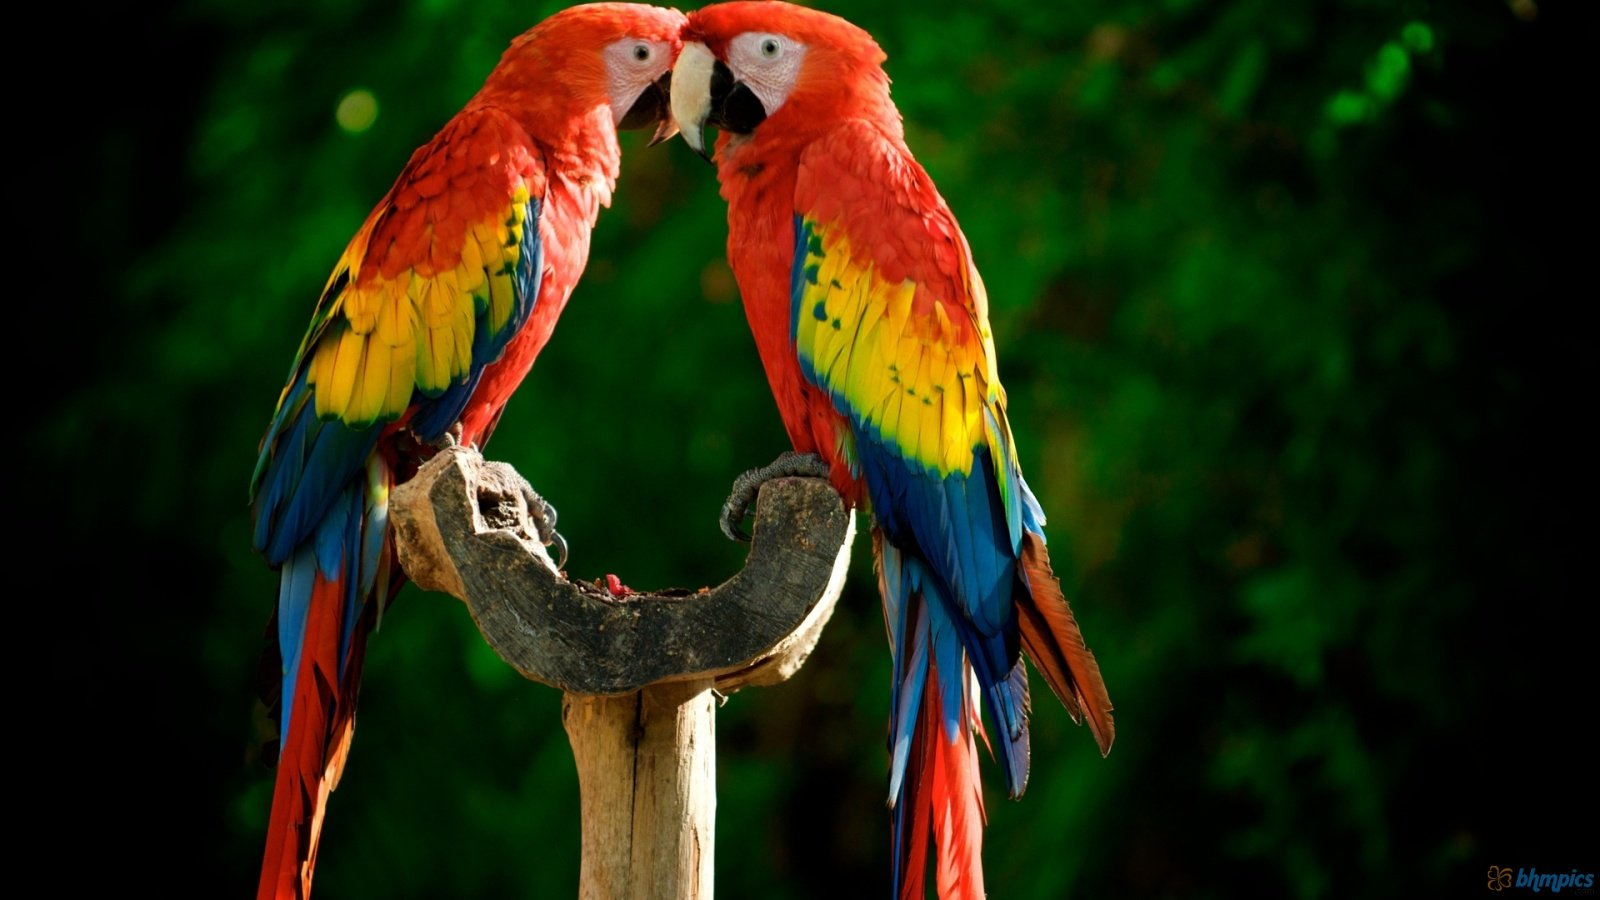 Parrot Images YG556 High Quality Wallpapers For Desktop And Mobile 1600x900